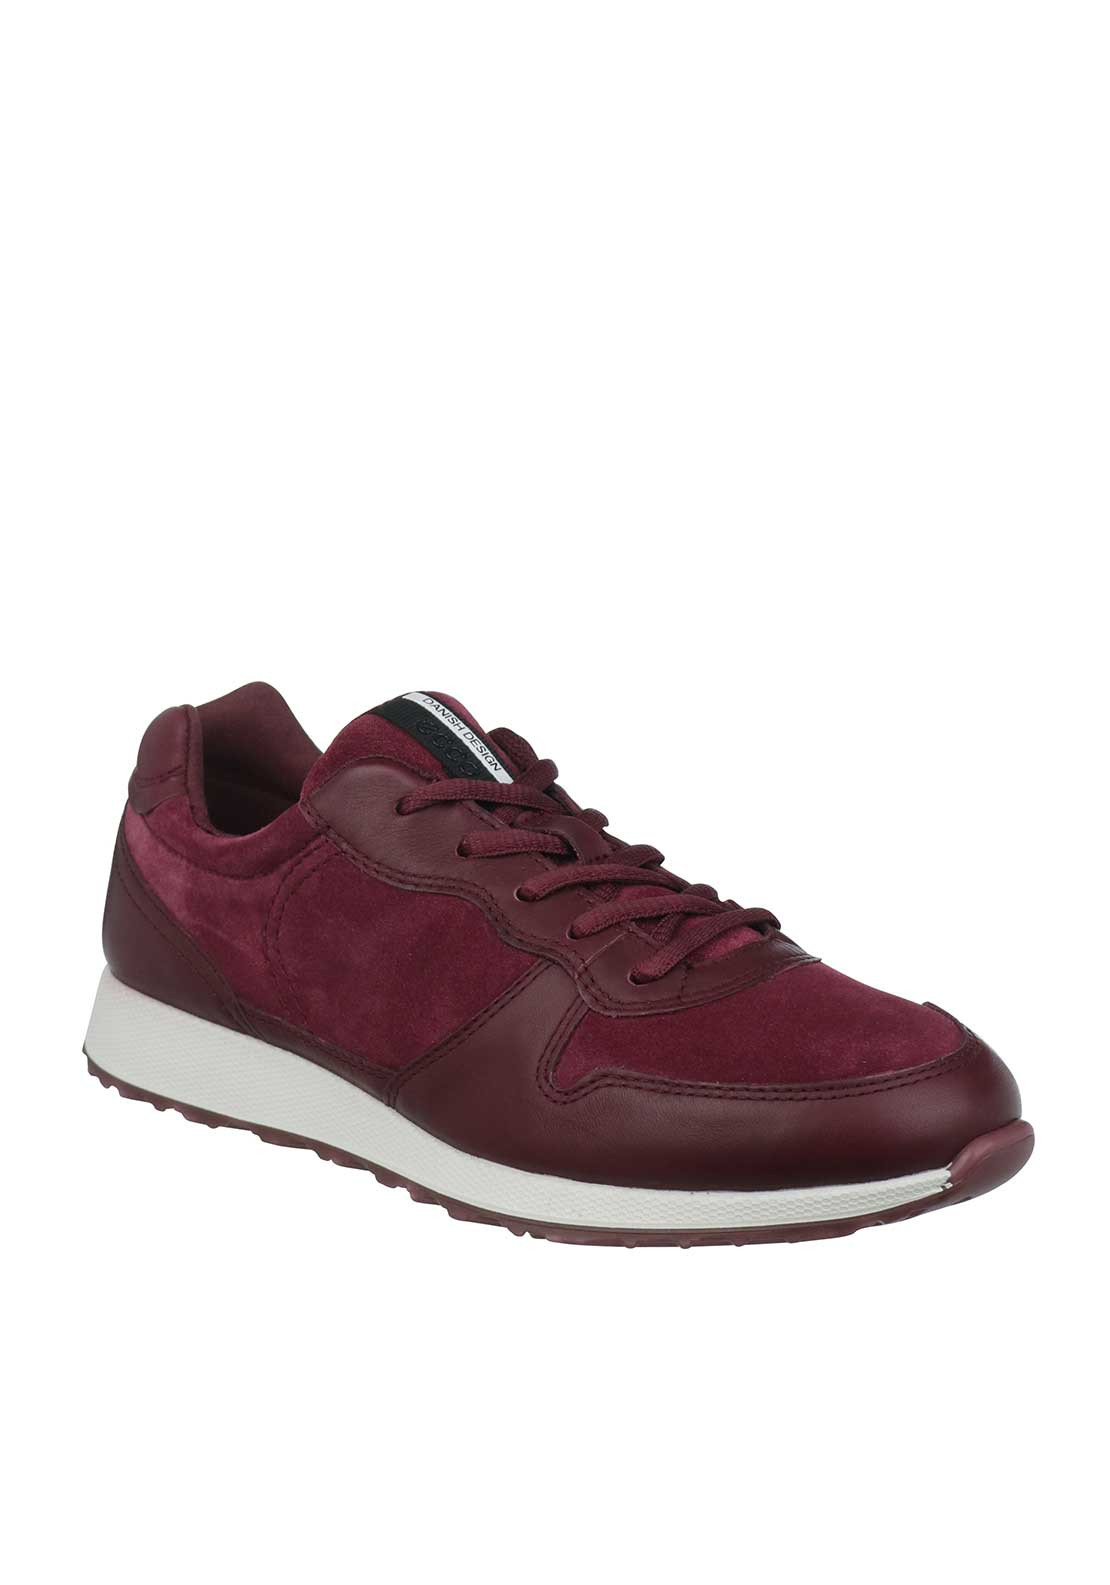 Ecco Womens Leather Sneak Trainers, Wine